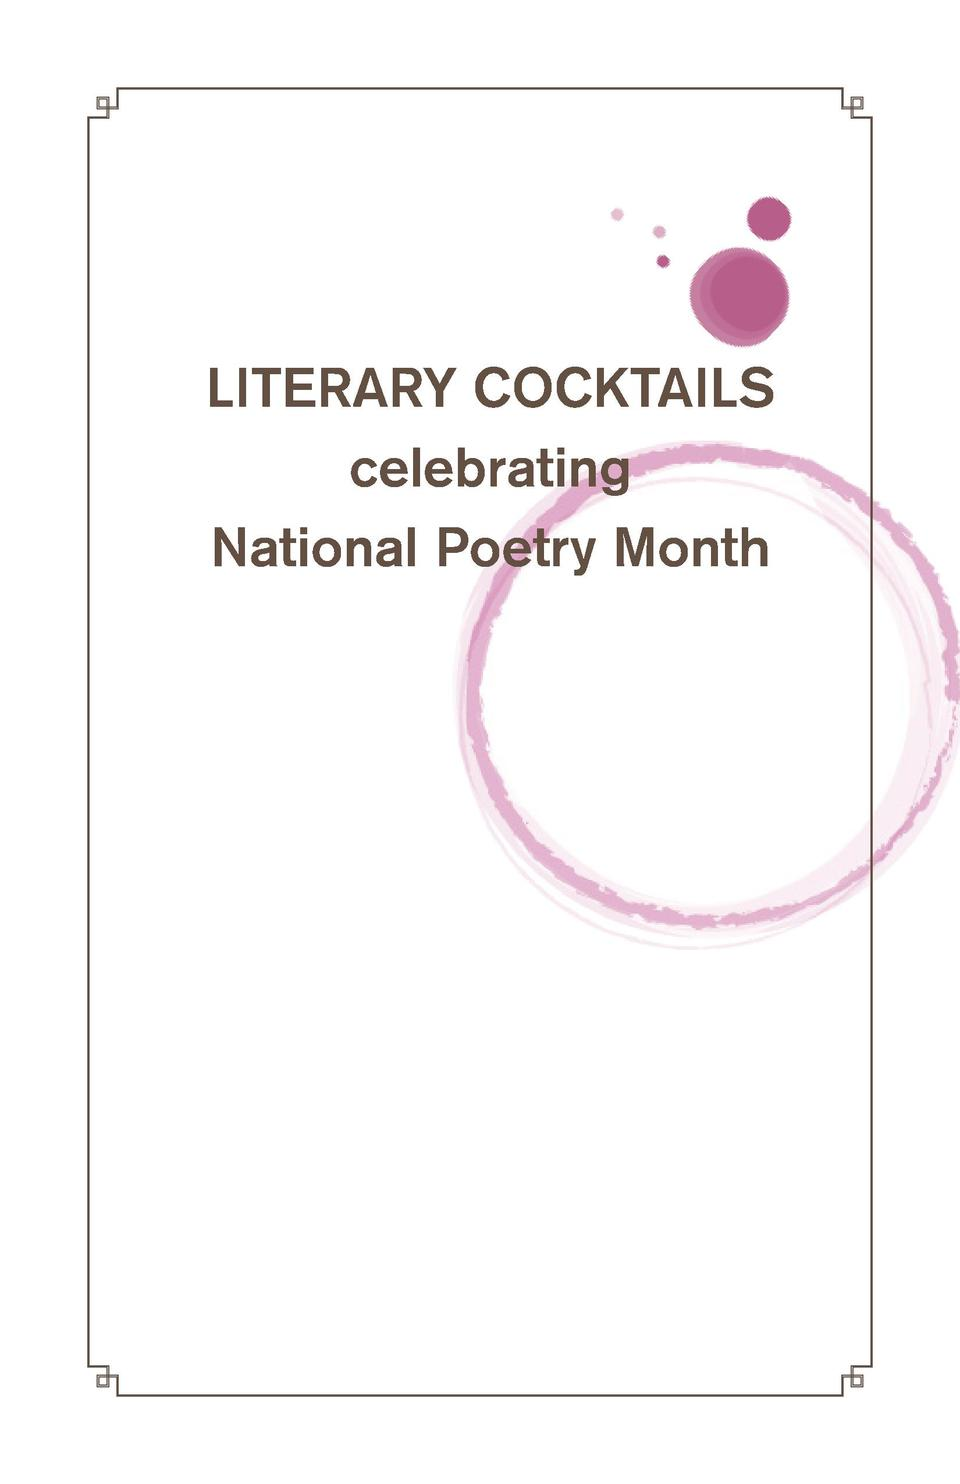 LITERARY COCKTAILS celebrating National Poetry Month